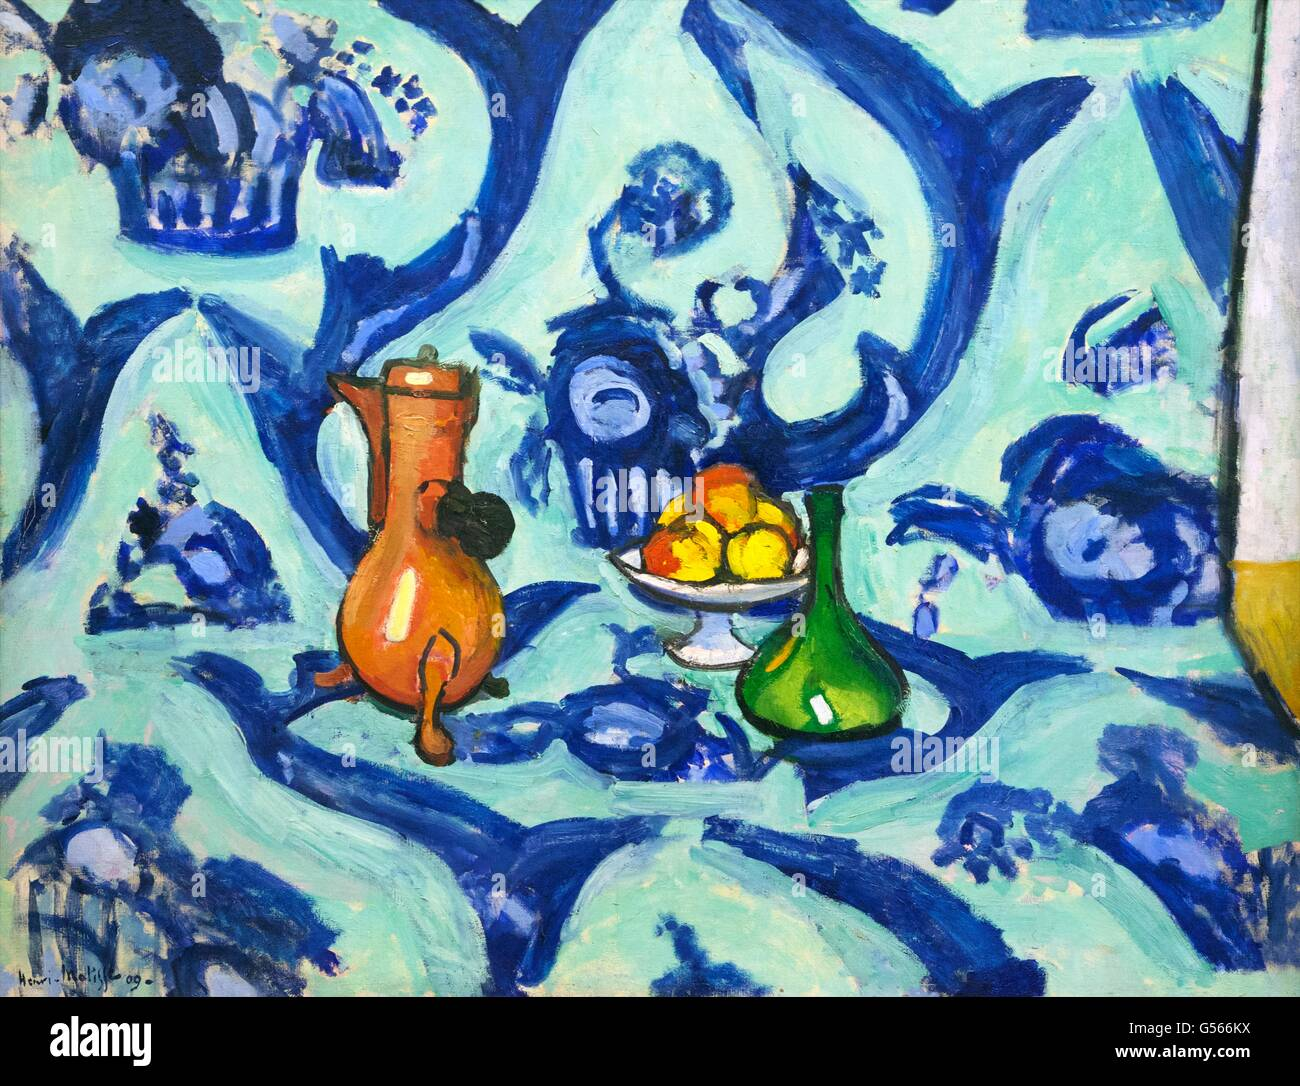 Still Life with Blue Tablecloth, by Henri Matisse, 1909, State Hermitage Museum, Saint Petersburg, Russia - Stock Image